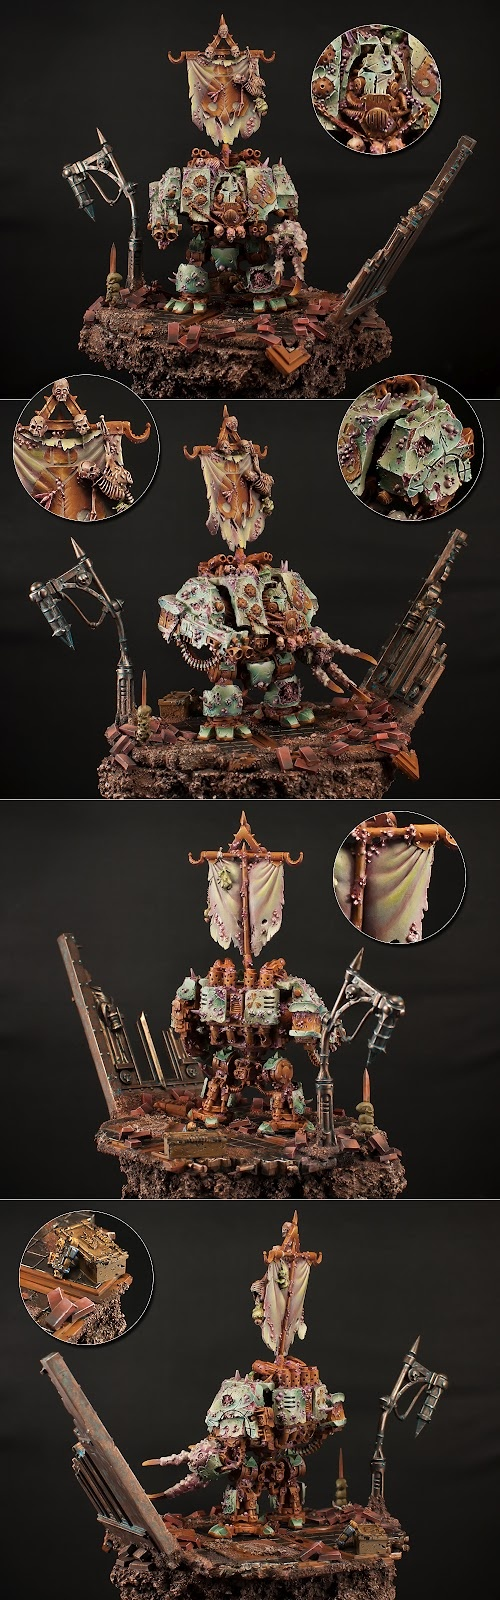 Warhammer 40k - Chaos Space Marines, Nurgle Dreadnought